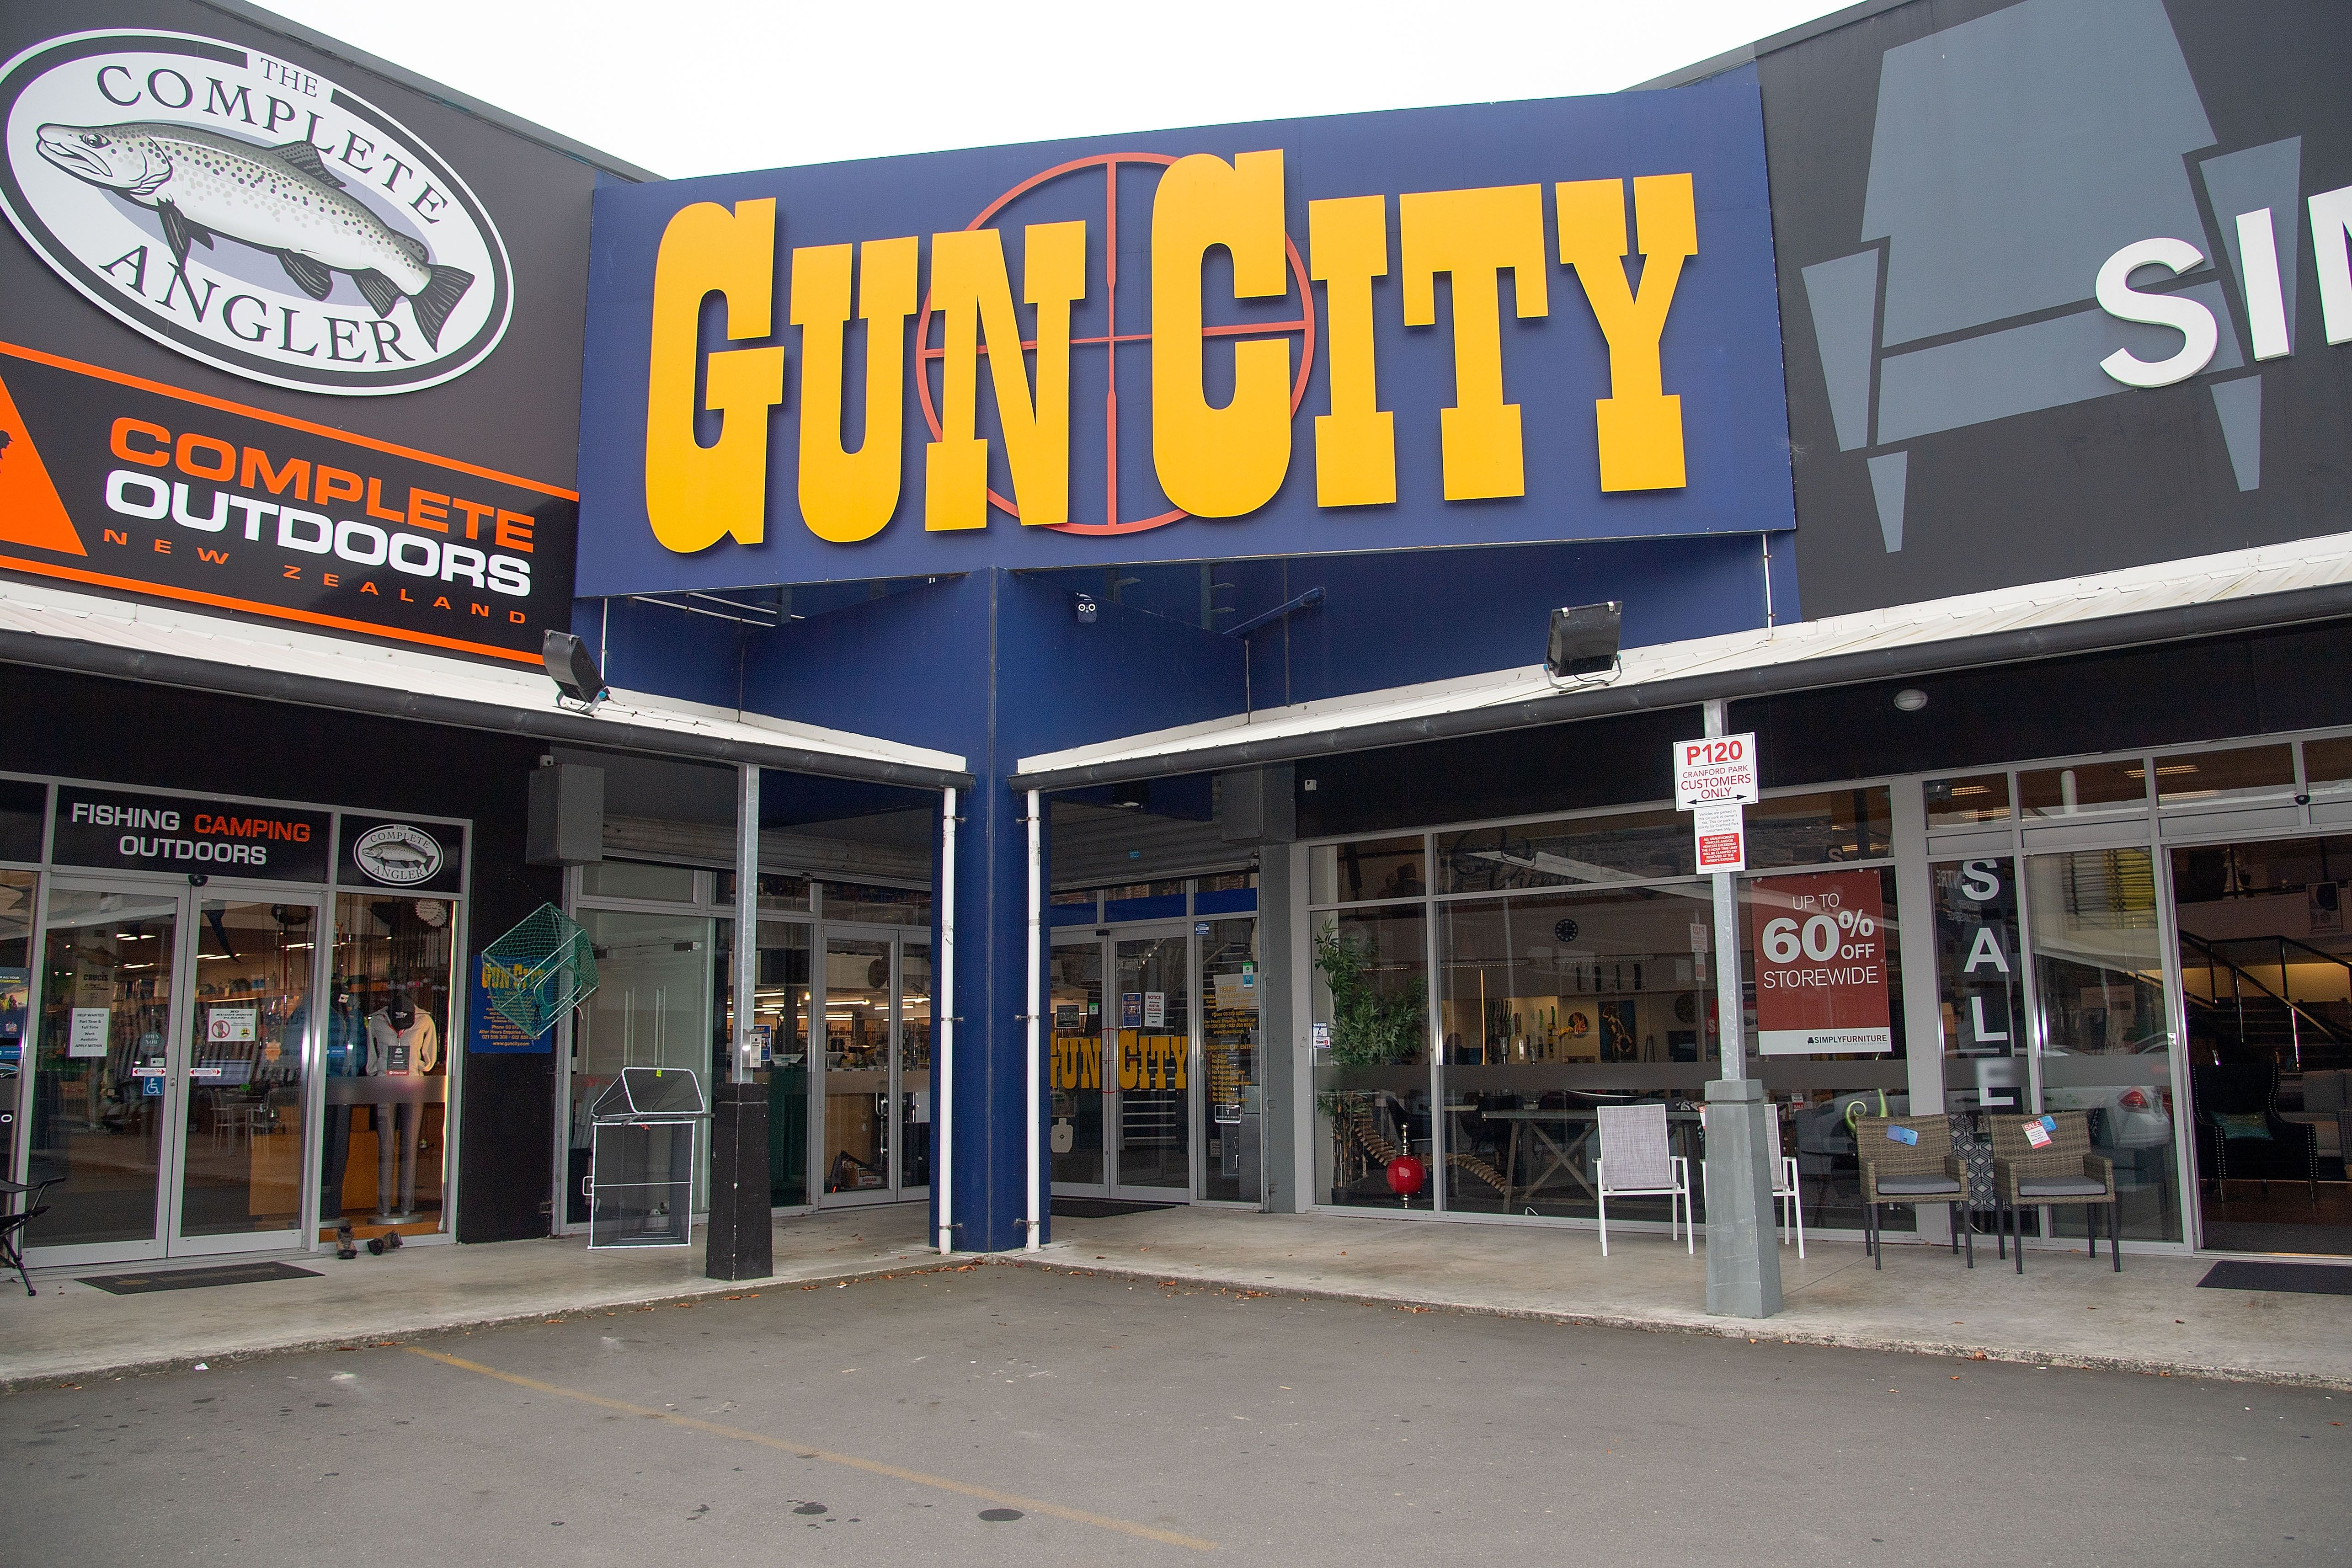 The Gun City store is seen on the outskirts of Christchurch on March 18.